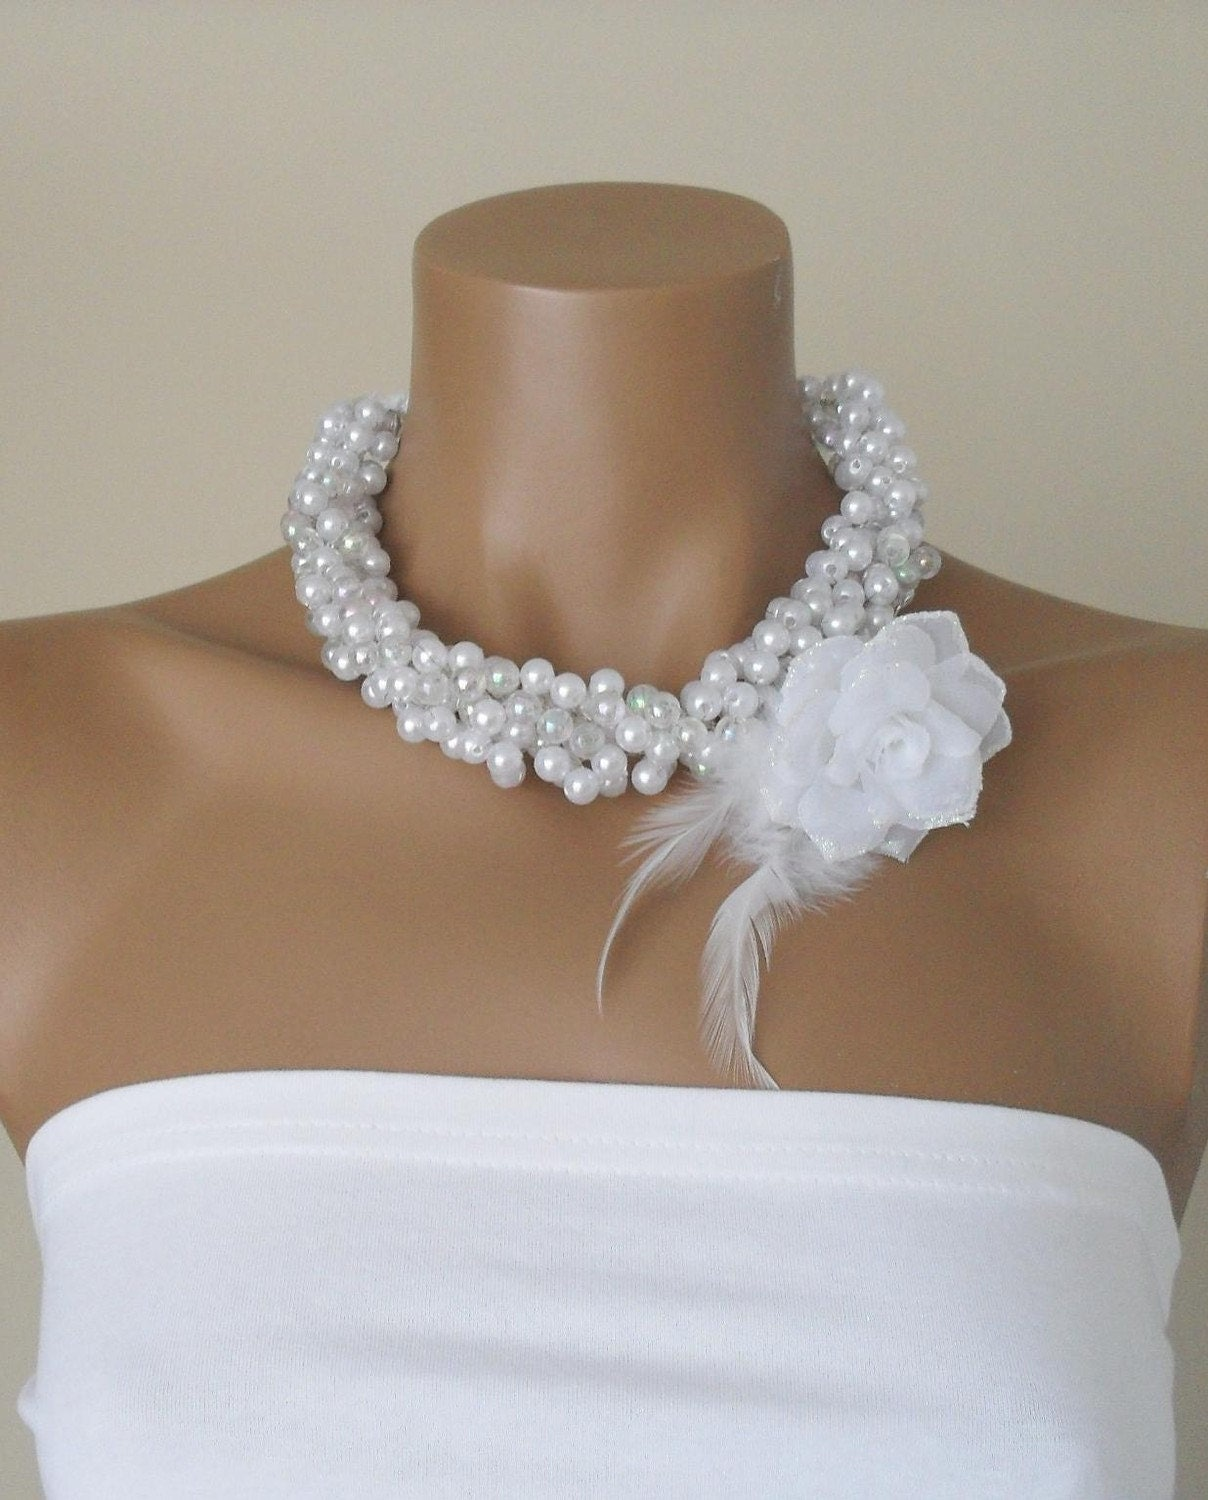 Handmade Weddings  Pearl Necklace Brides Bridesmaids by divaoutlet from etsy.com